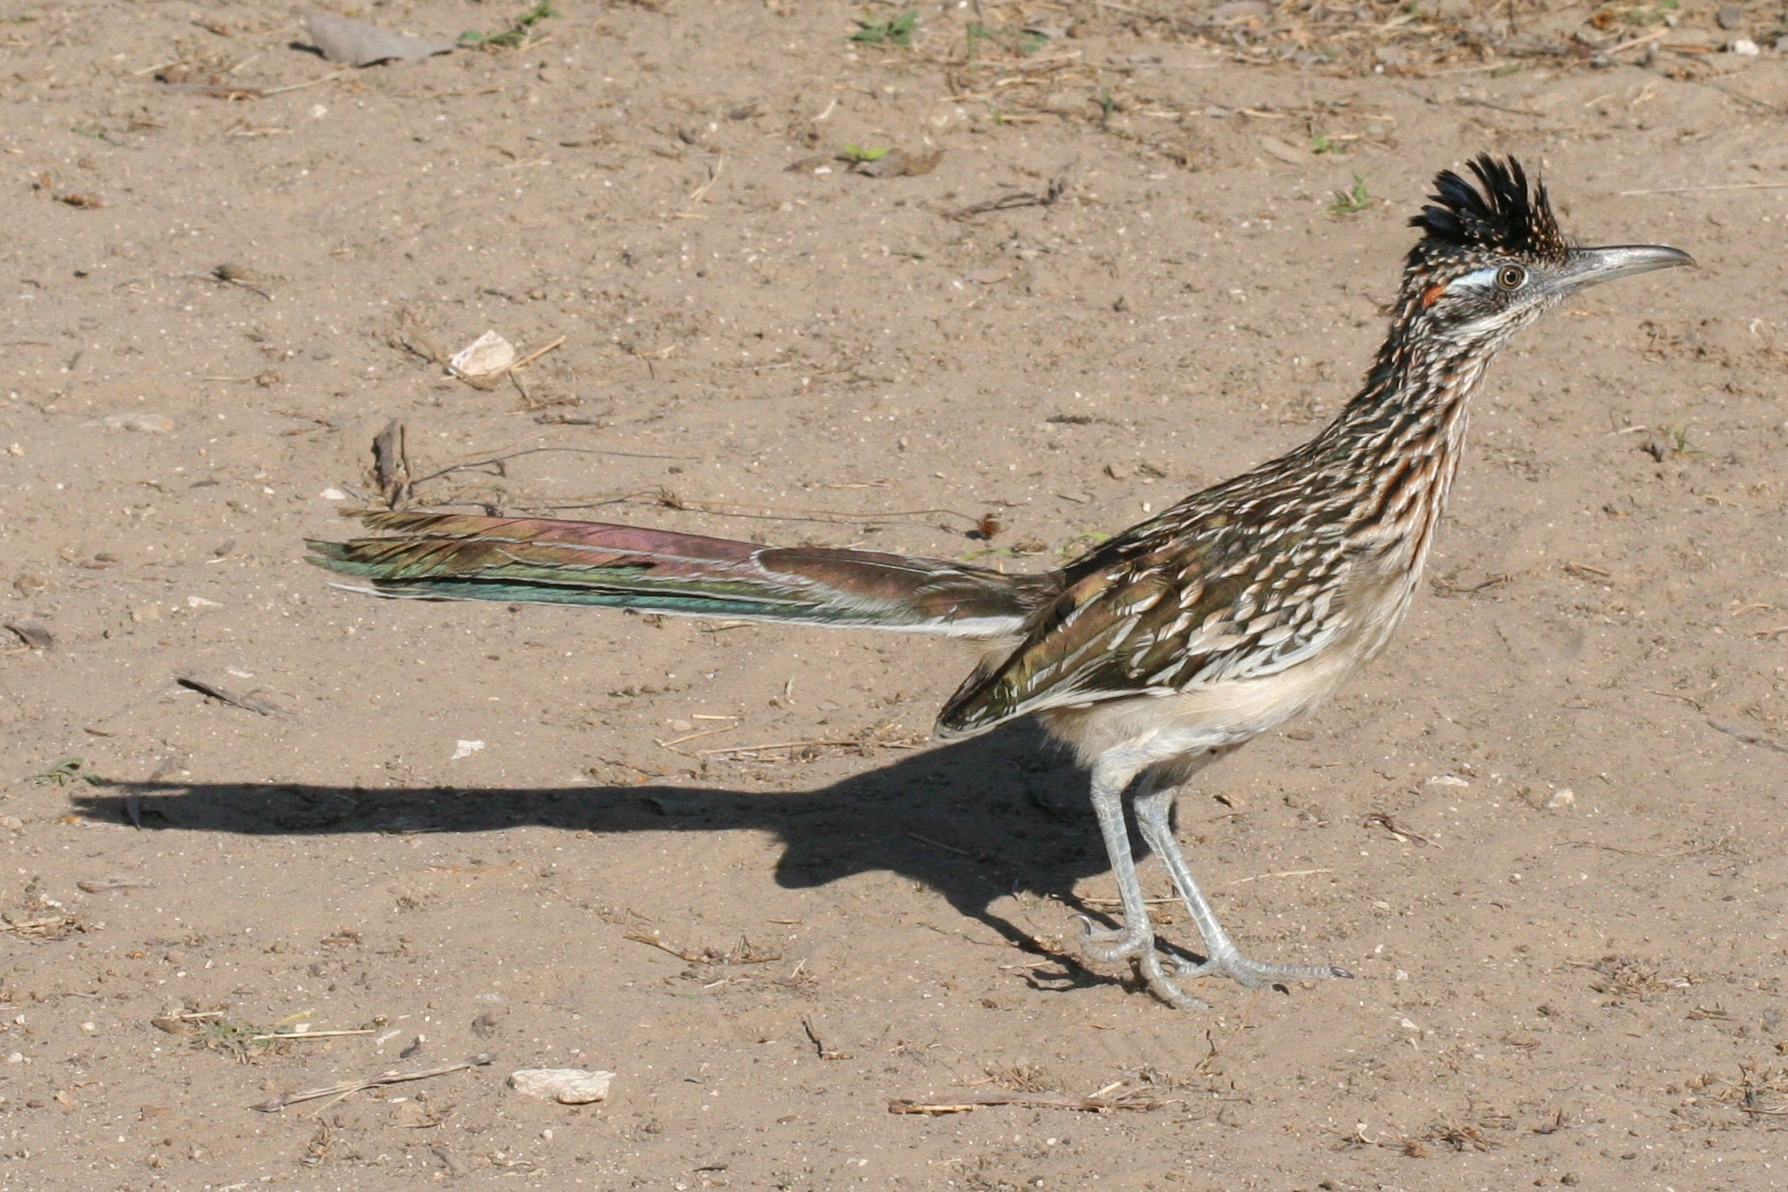 File:Roadrunner at Falcon SP.jpg - Wikimedia Commons